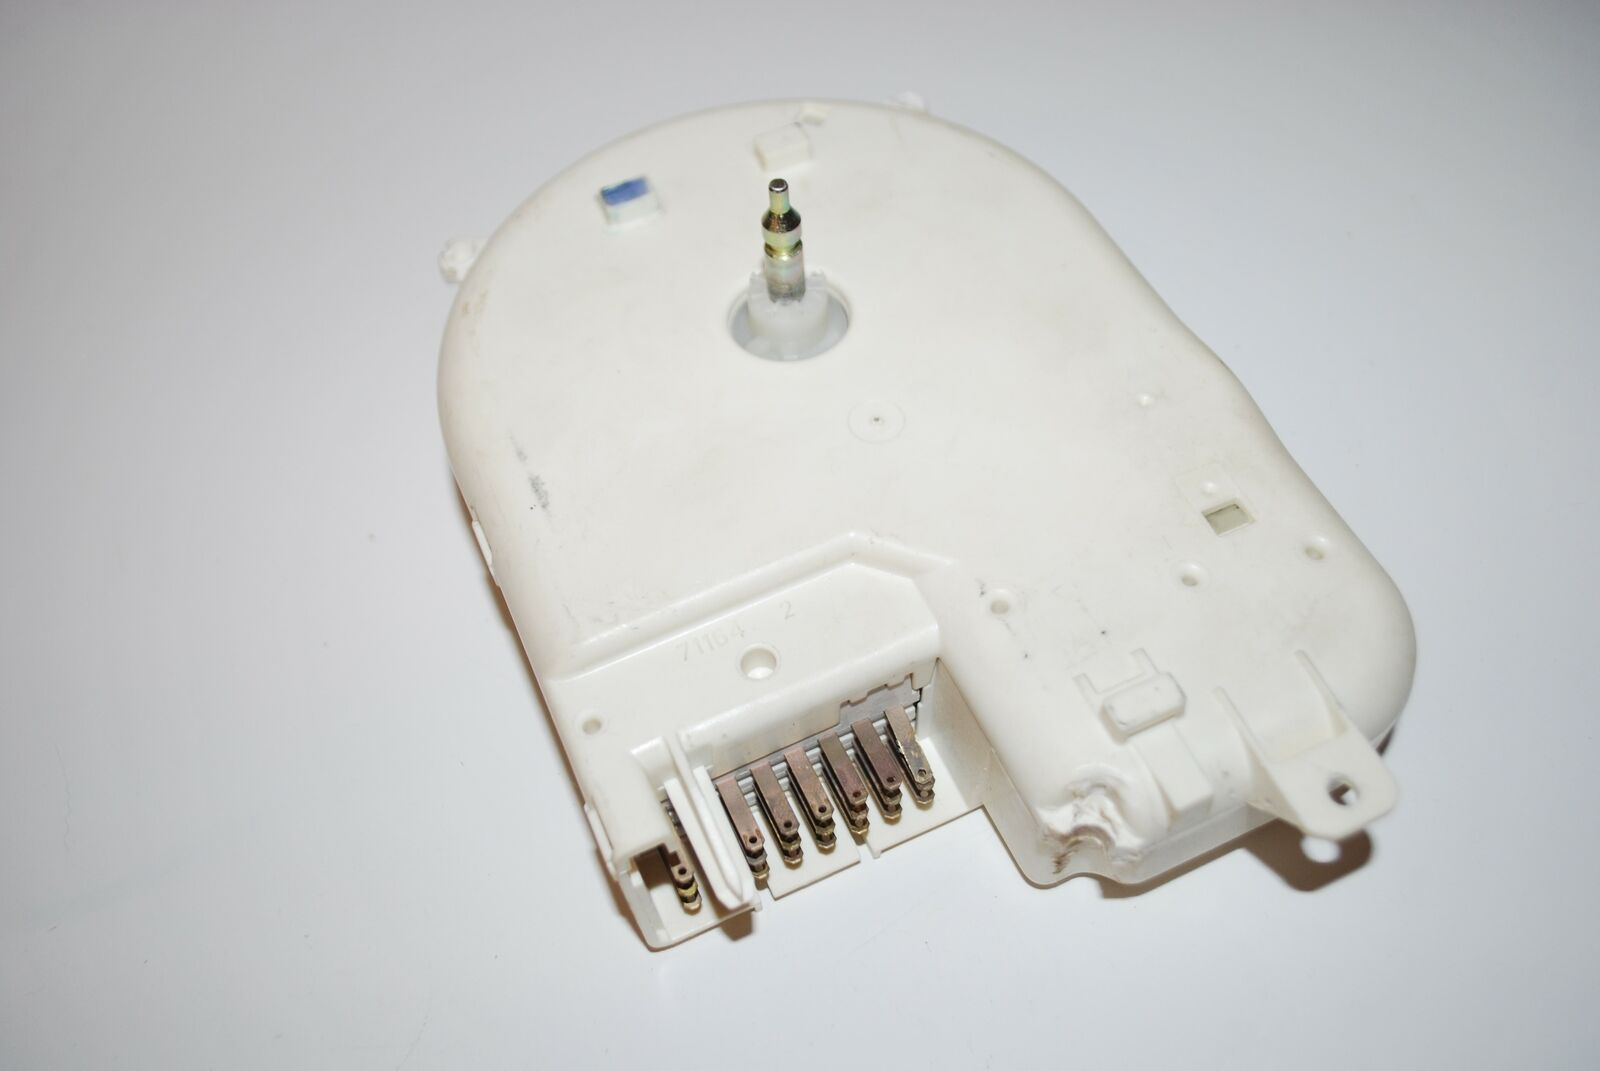 175D5100P003 WH12X10295 GE Washer Timer